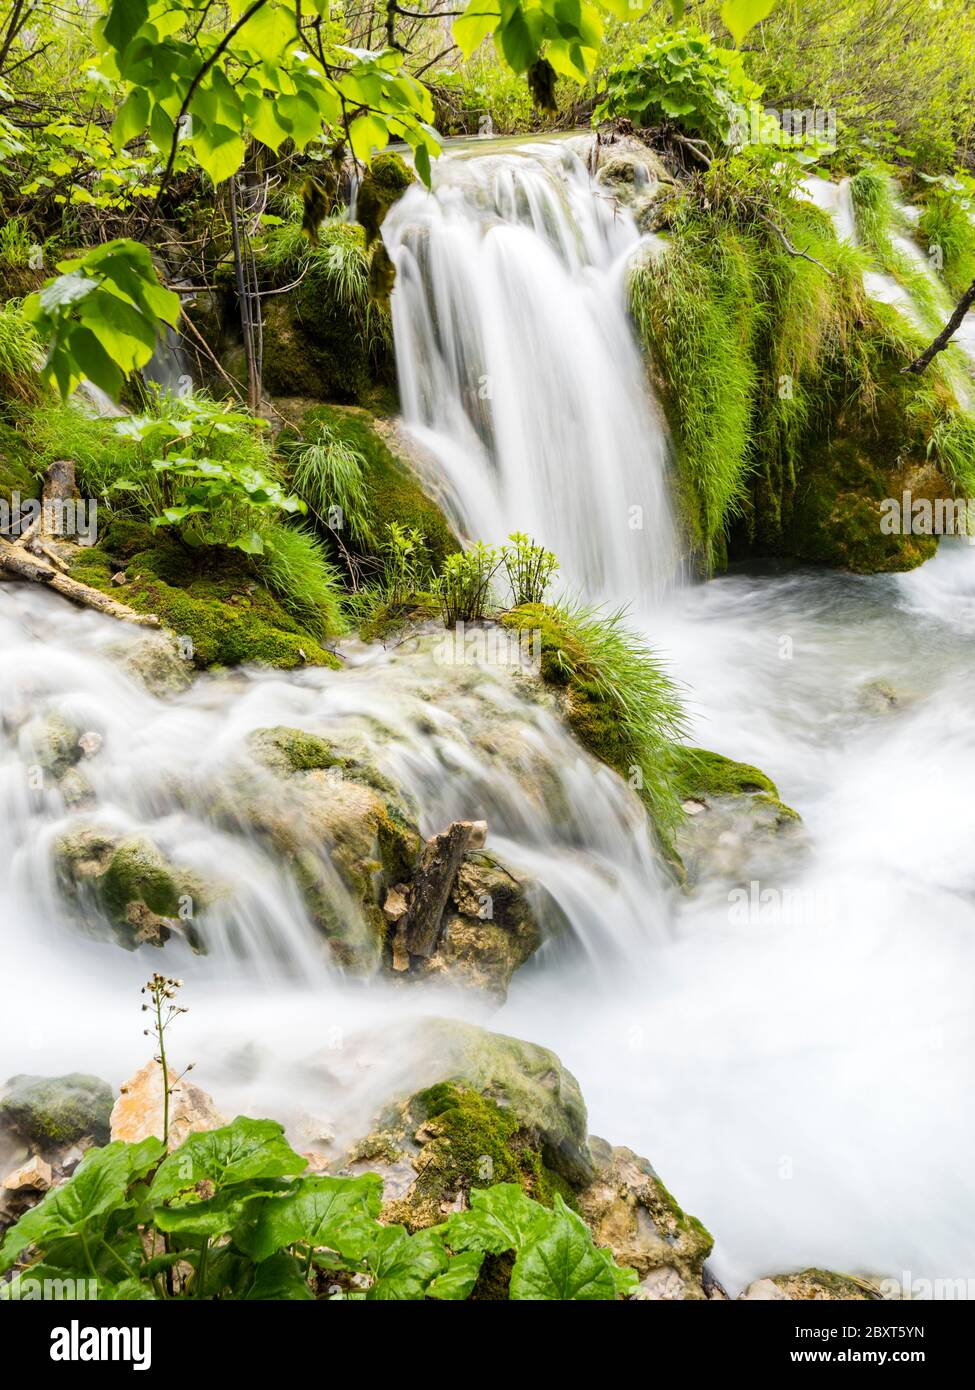 Plitvice lakes intensive vivid Green forest in Spring season in Croatia Europe empty cascading waterfall river flow riverflow long exposure Stock Photo